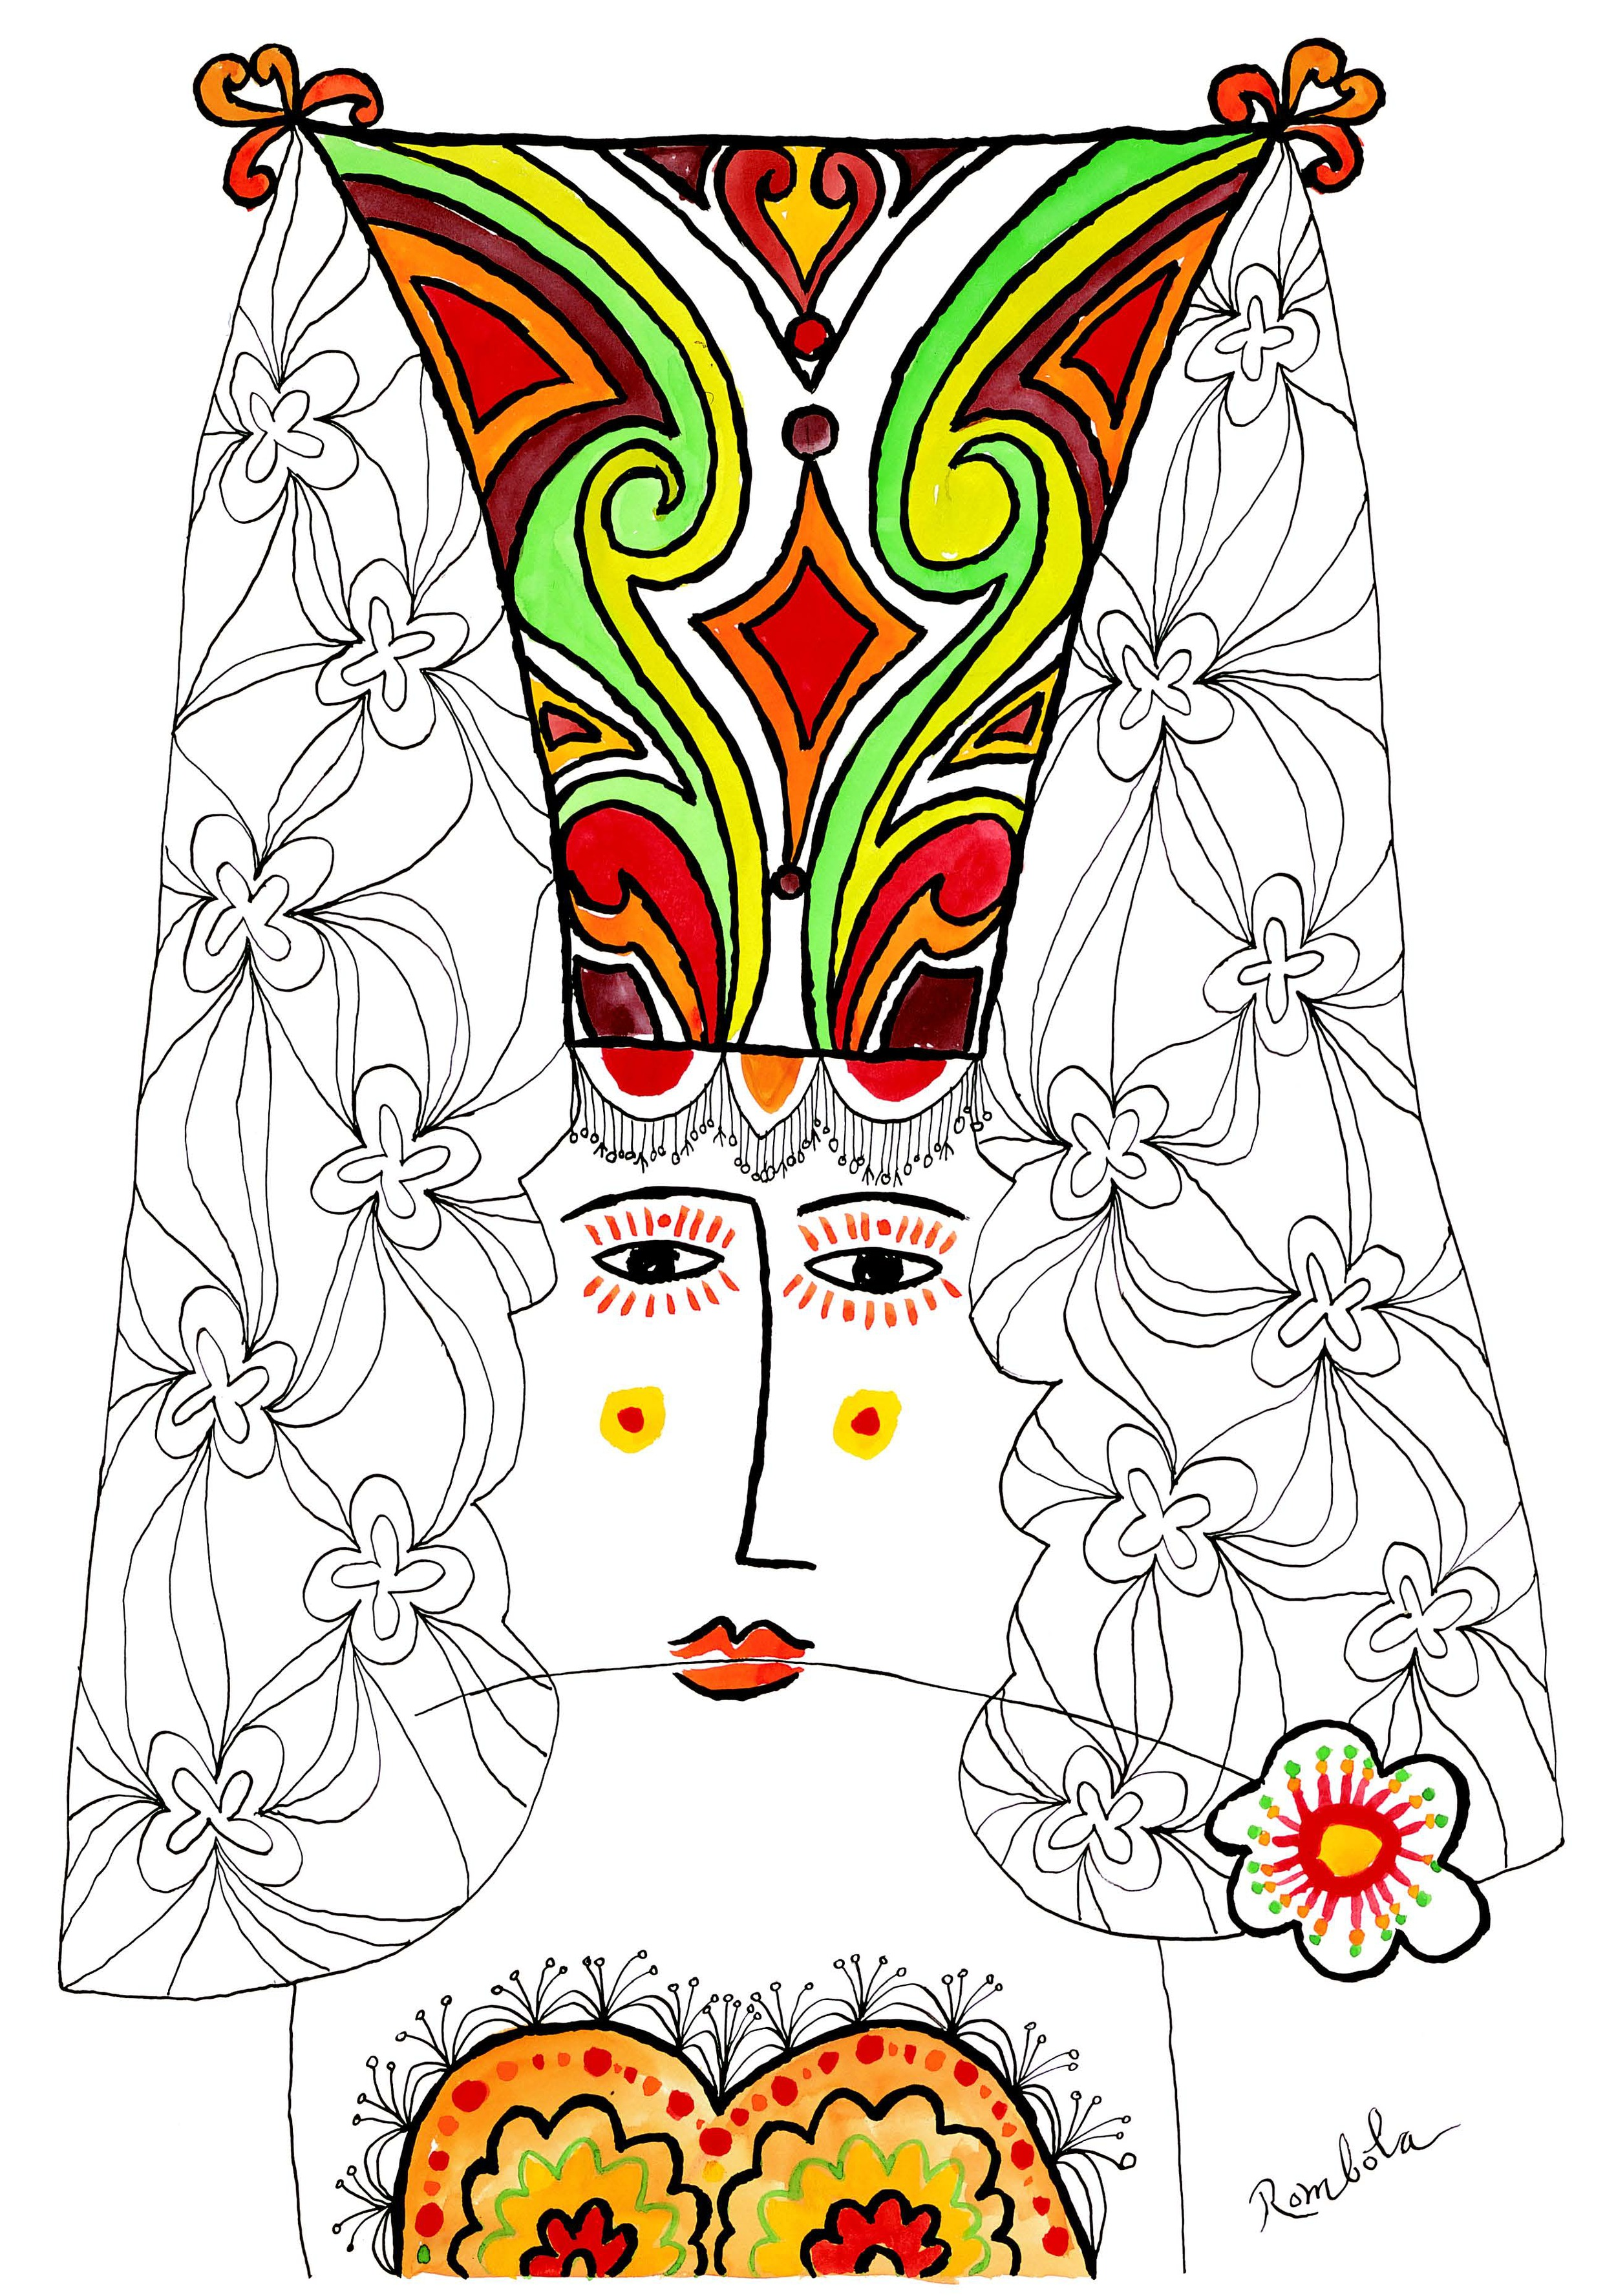 Señorita    1960 Gouache and ink on paper. Published in  Horizon , 1960